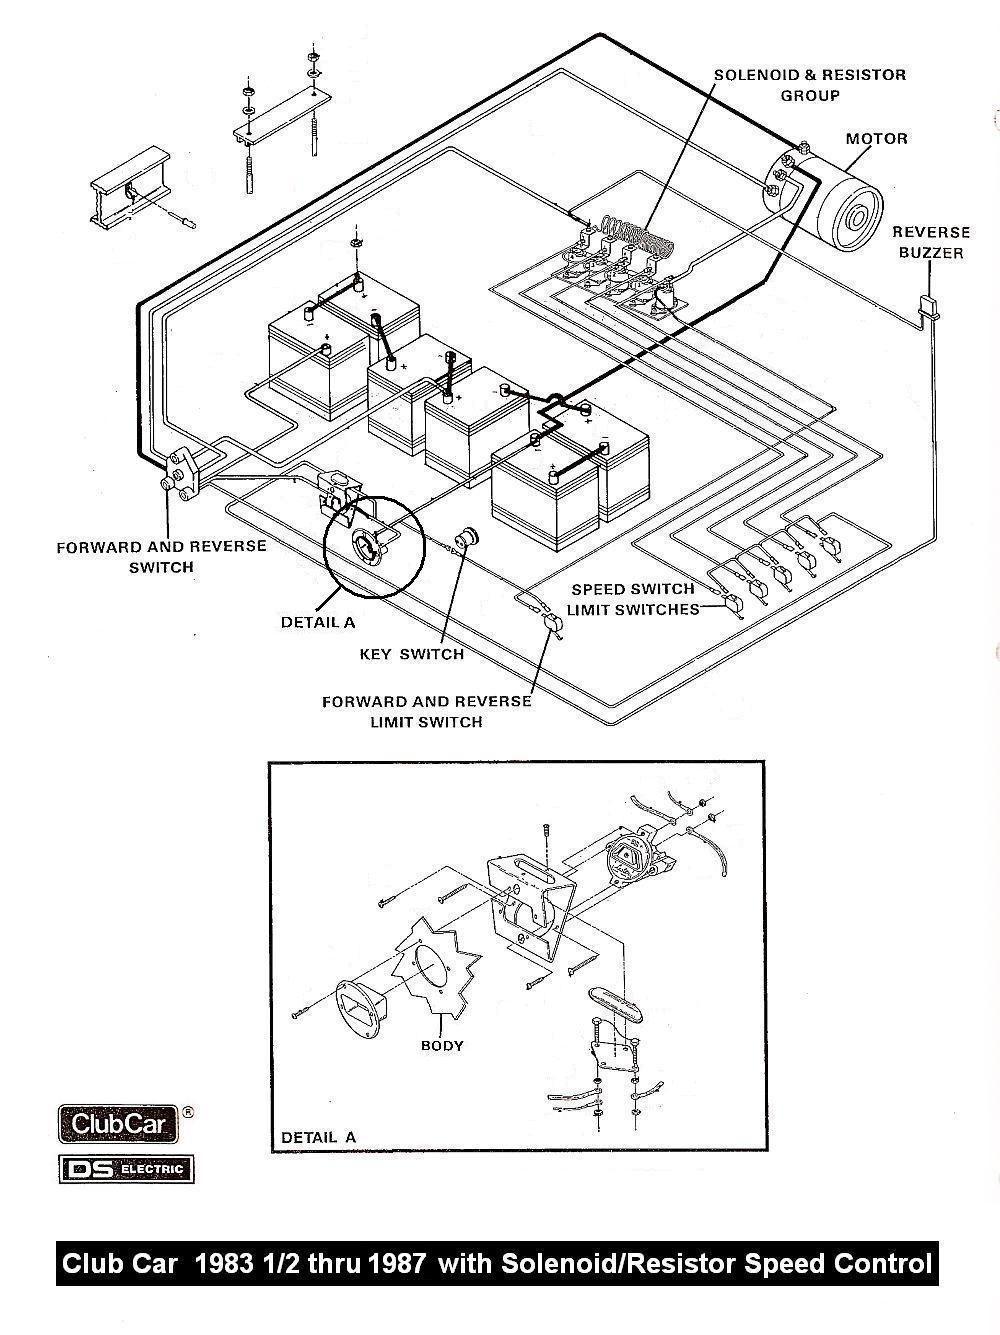 0e8d045370be7682b159825224221faa vintagegolfcartparts com *freezer & crock pot* pinterest 2003 club car wiring diagram at panicattacktreatment.co